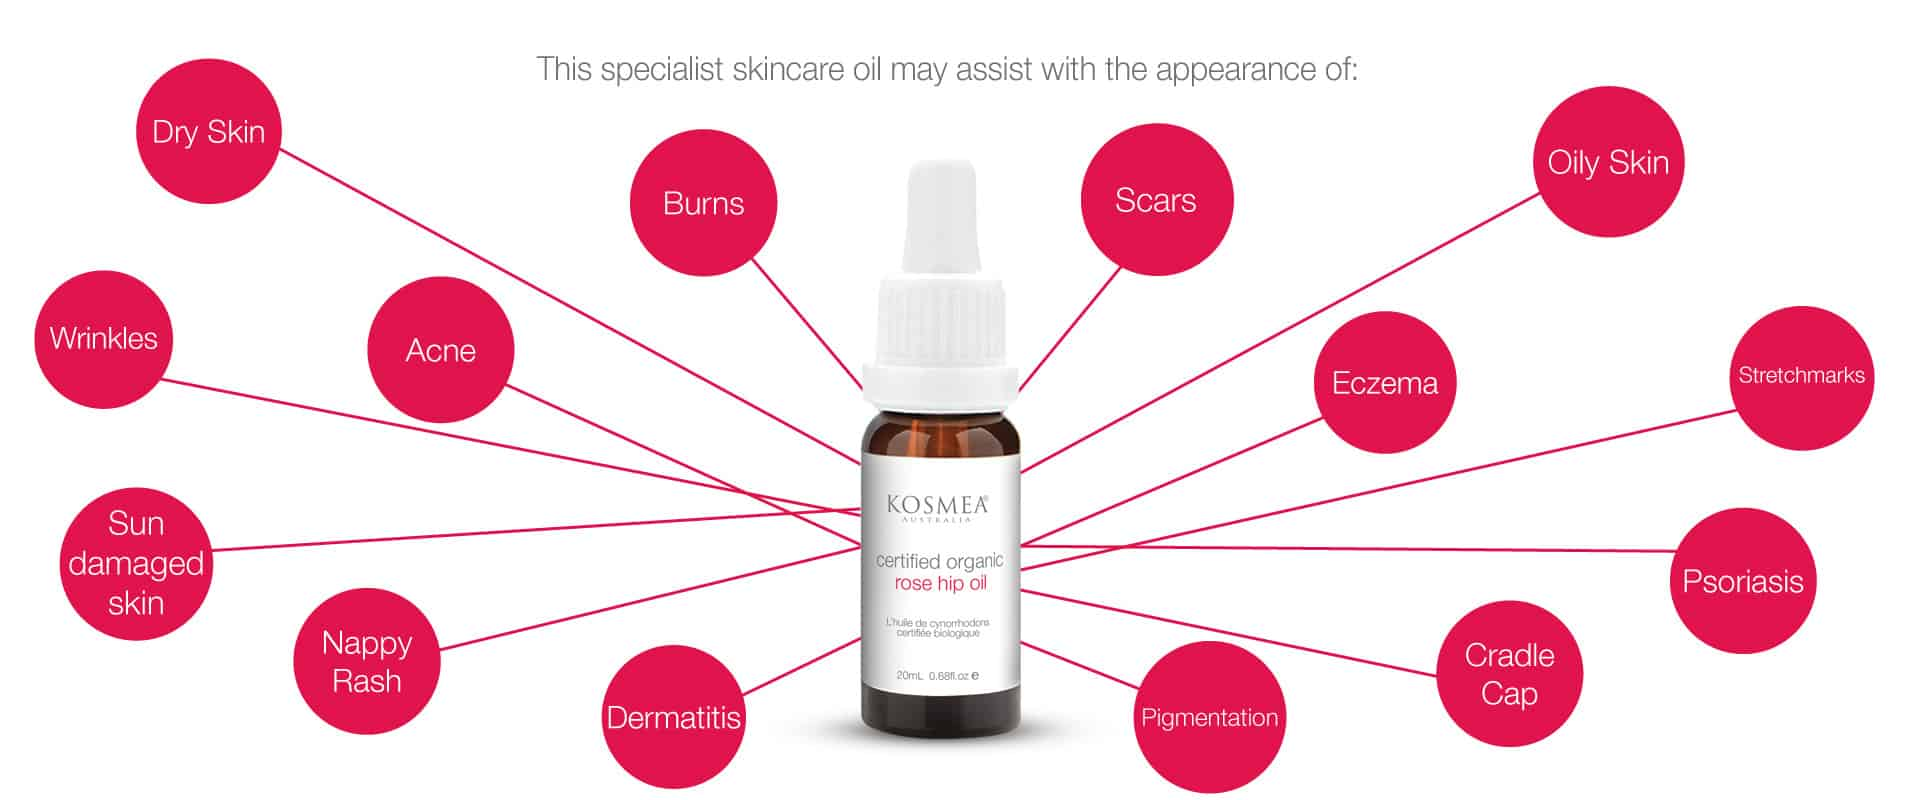 This specialist skincare oil helps with skin health